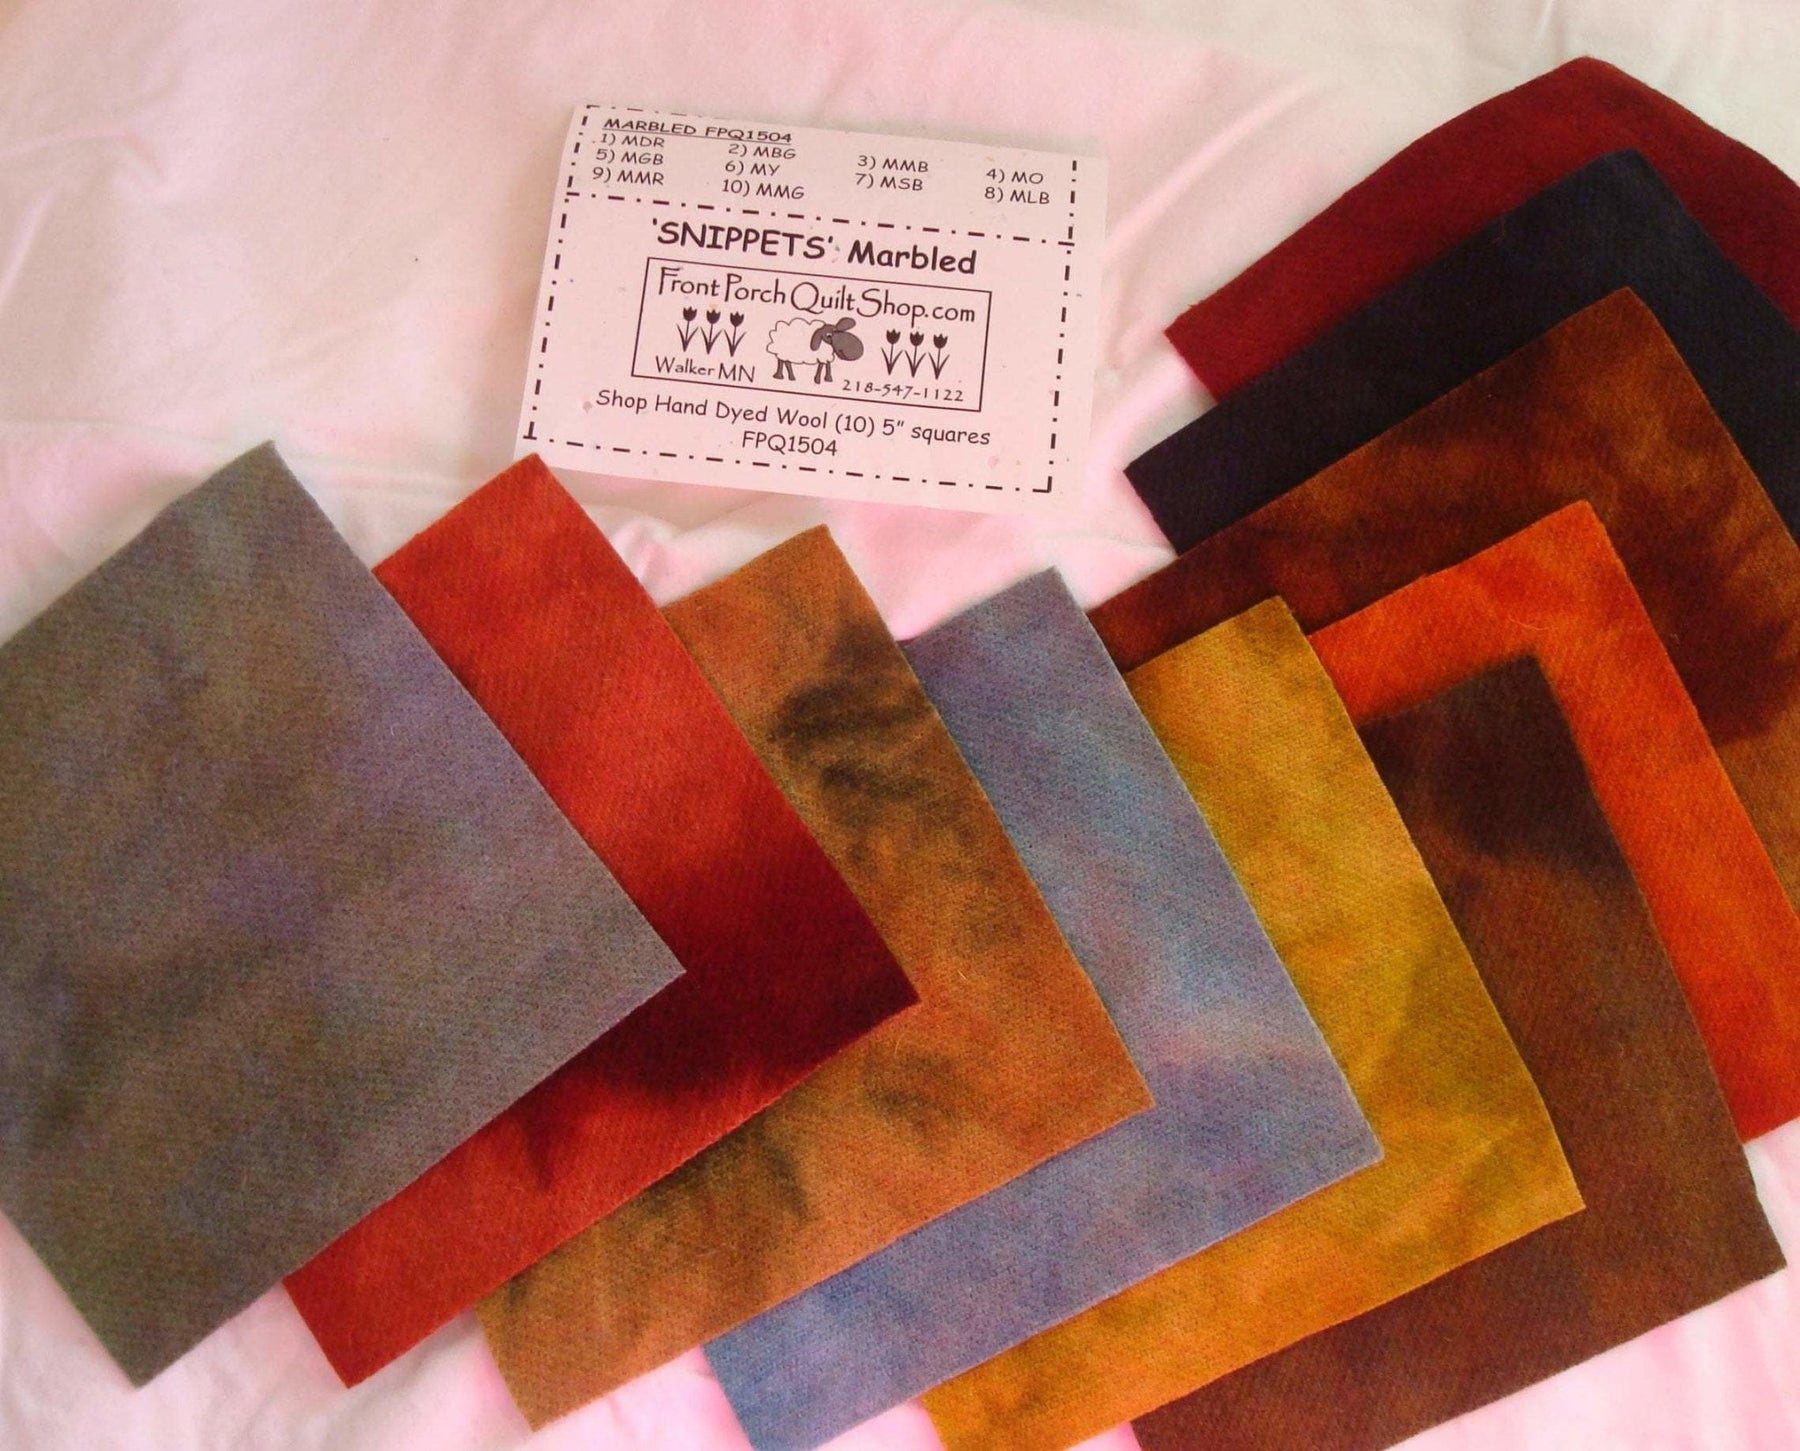 "Snippets ""Marbled"" Hand Dyed Wool by Front Porch Quilts - (10) 5 inch squares - FPQ1504 - Wool charms, applique - RebsFabStash"